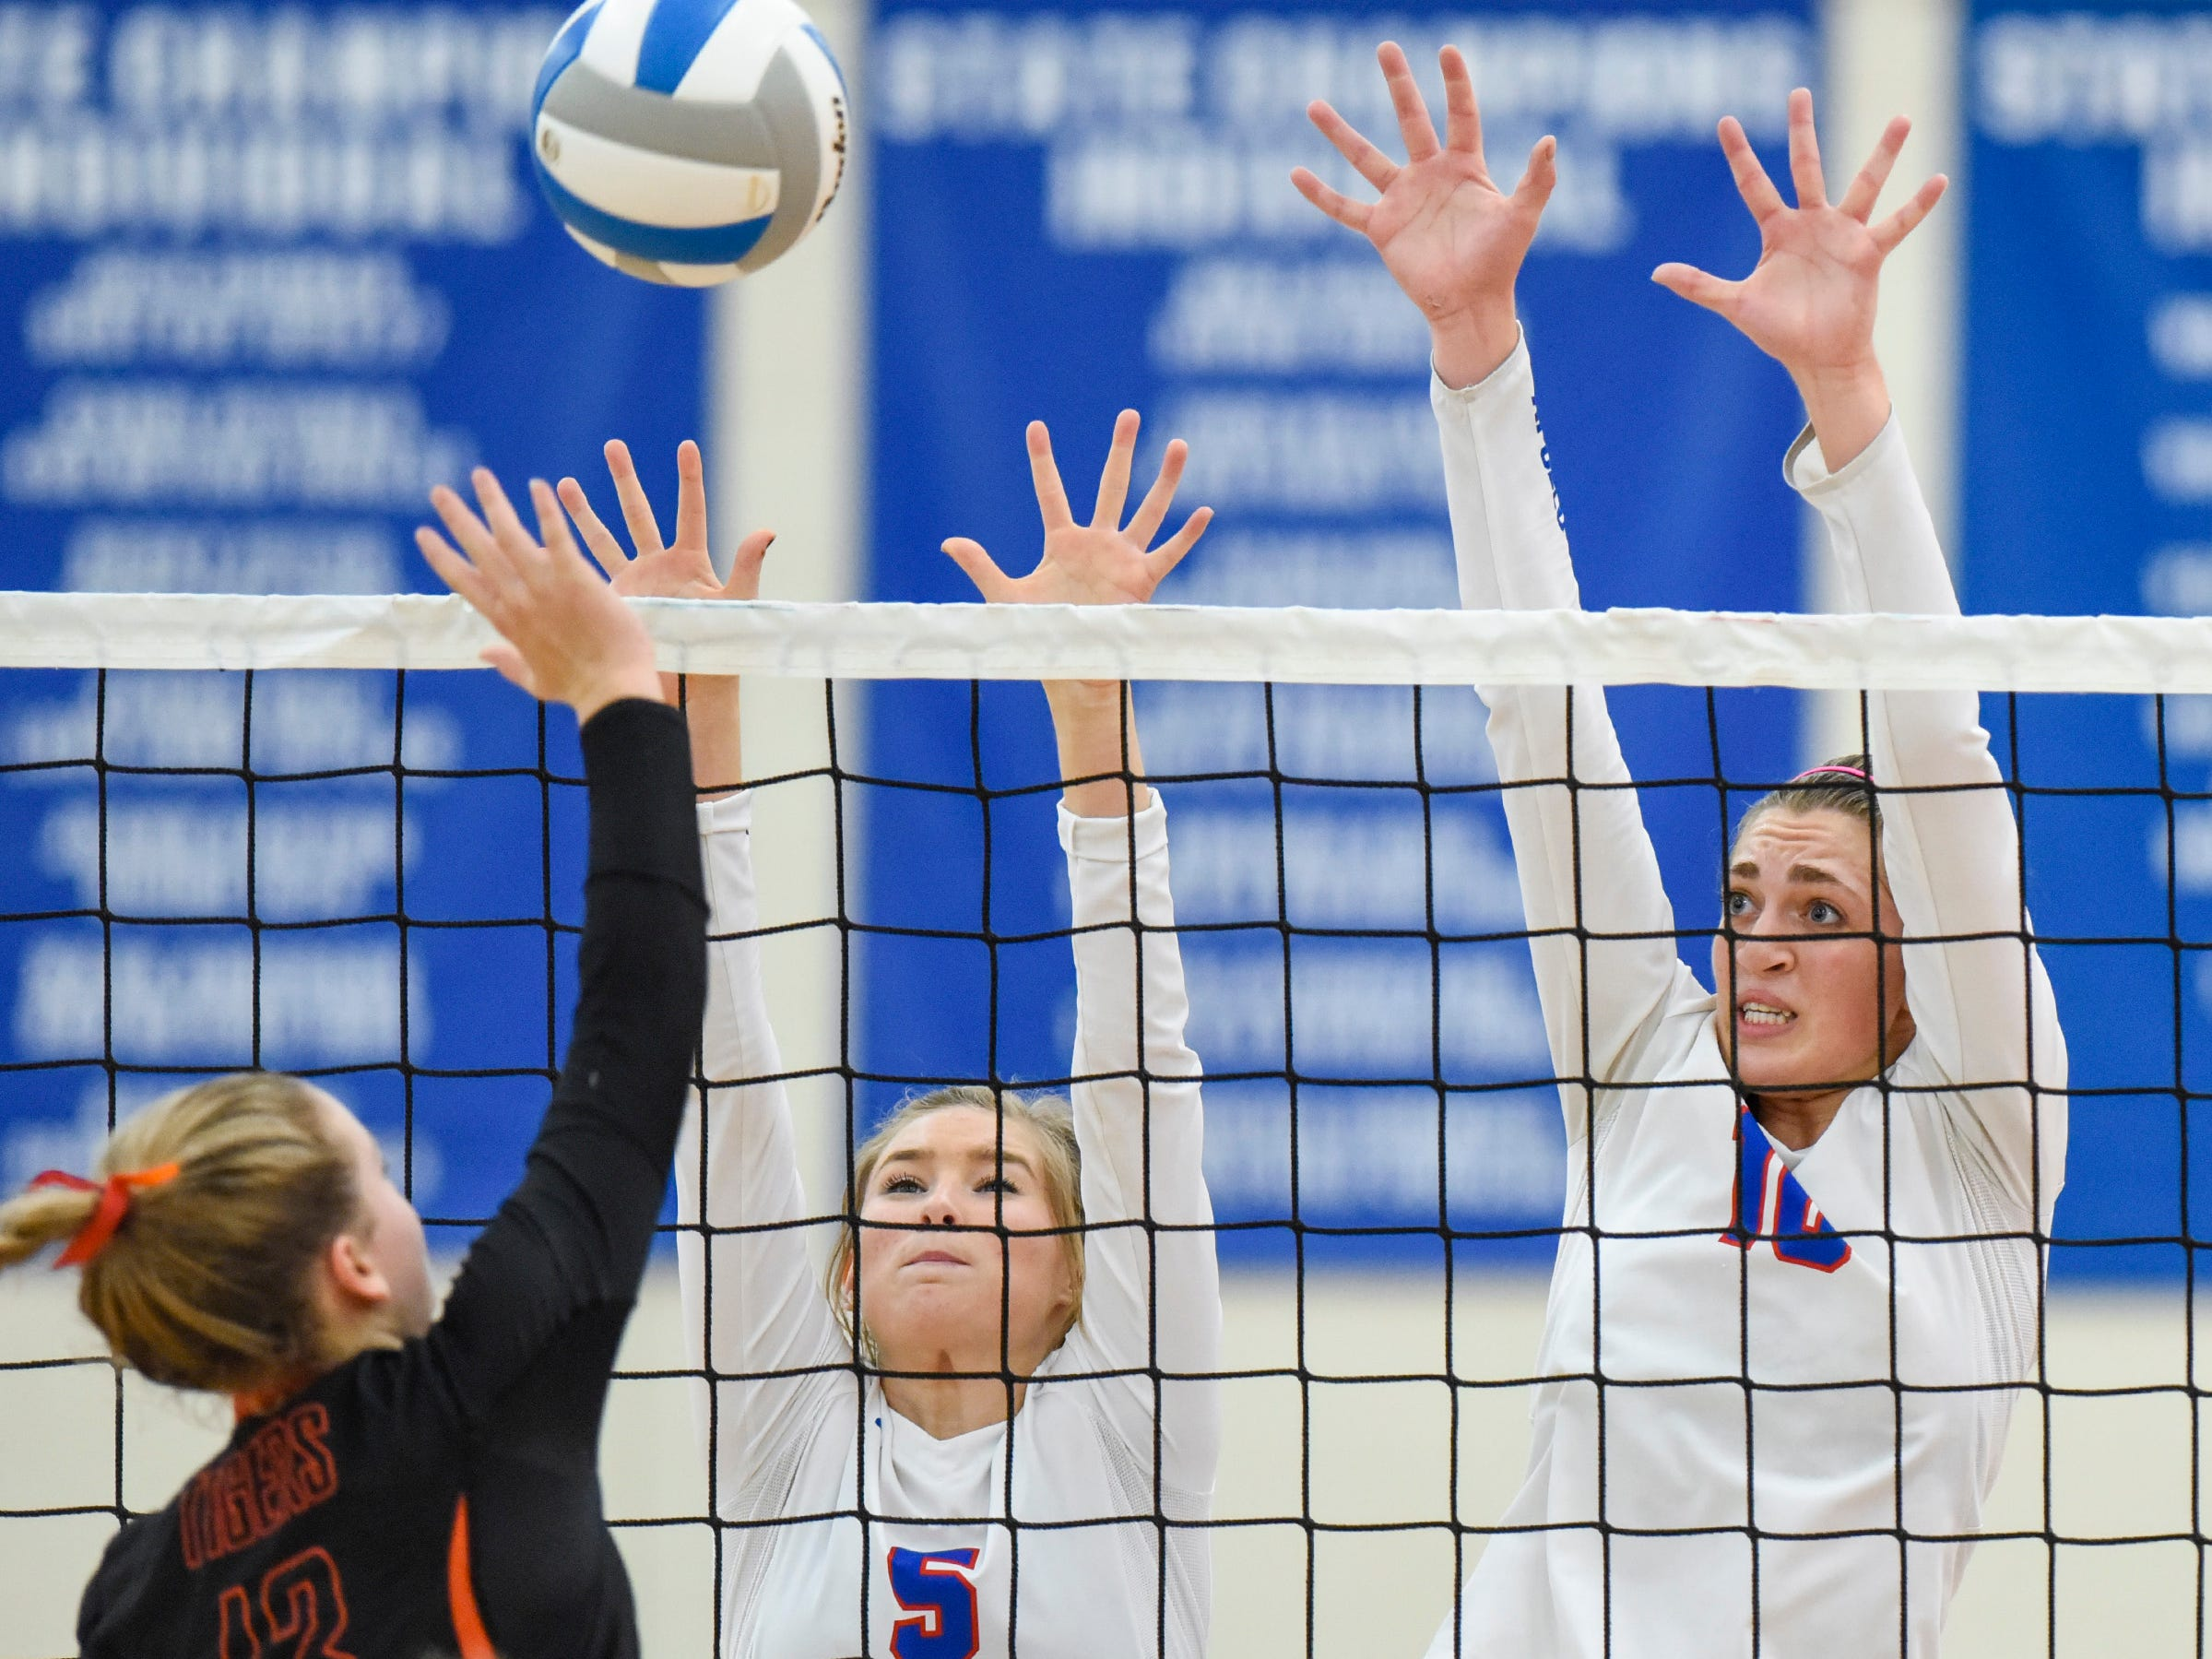 Tech's Megan Raygor tries to spike the ball past Apollo's Rhian Smith and Haley Schleper during the second game Tuesday, Oct. 2, at Apollo High School.